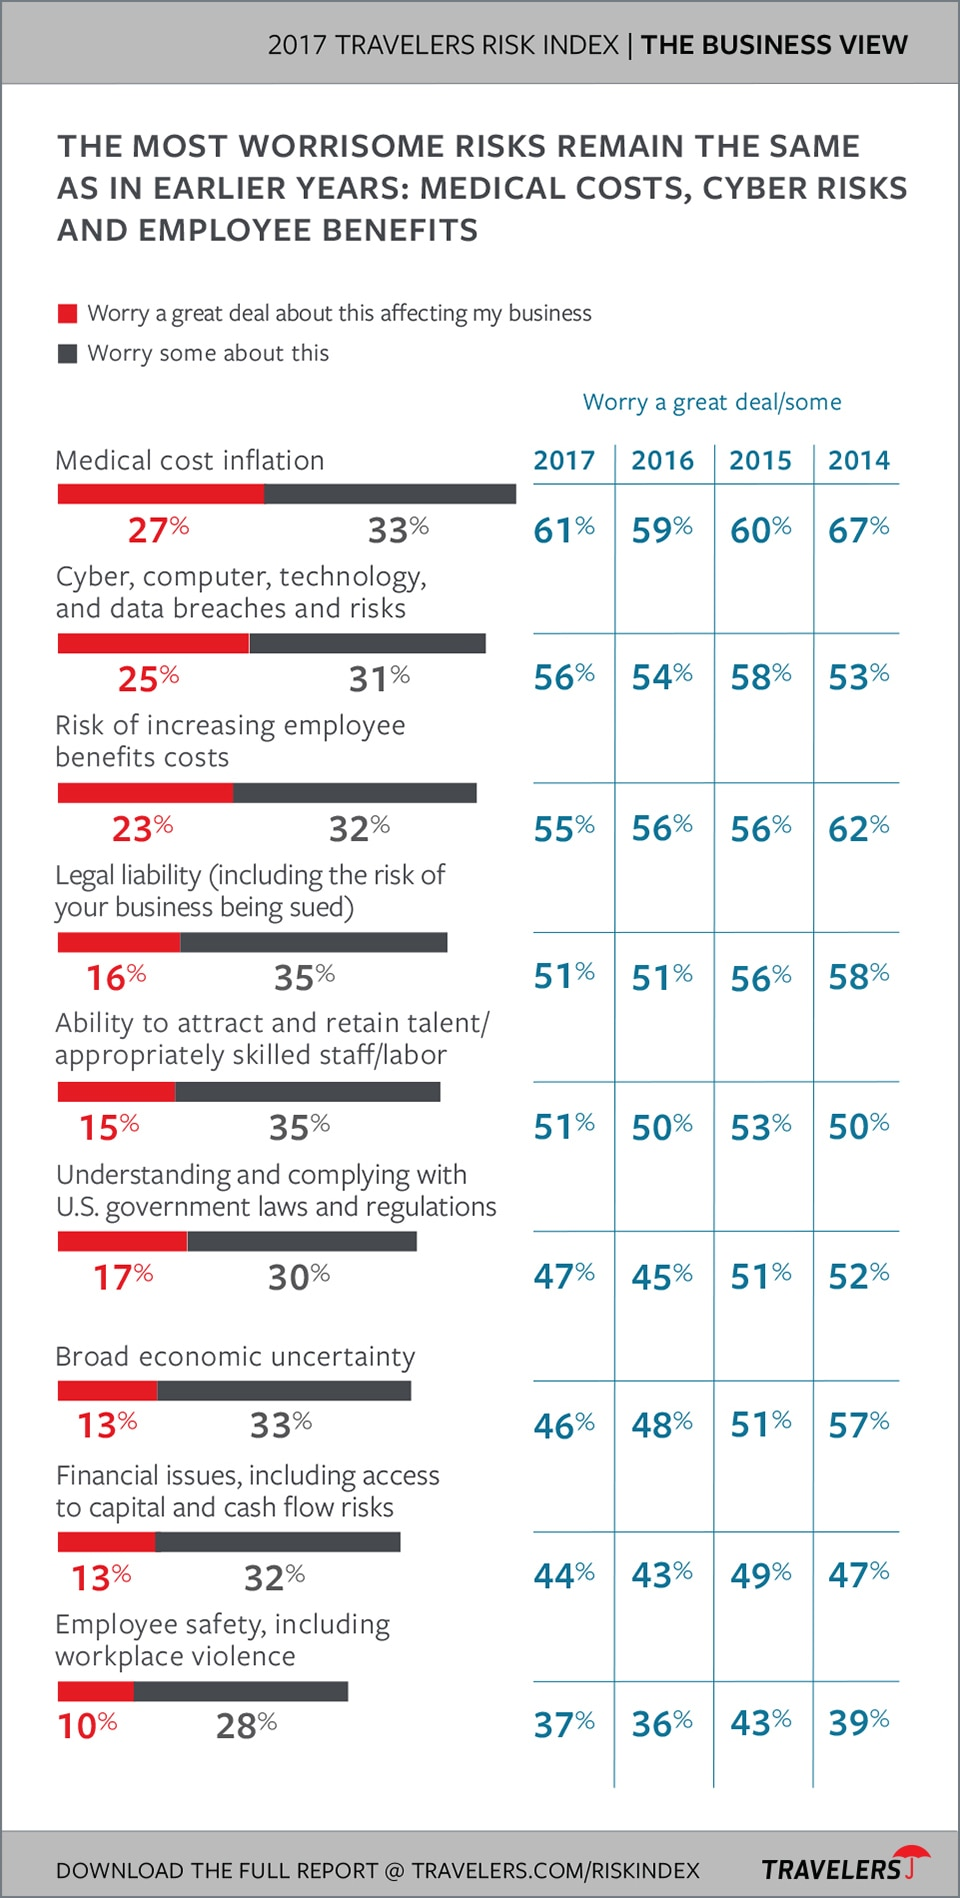 Top business concerns chart from 2017 Travelers Risk Index